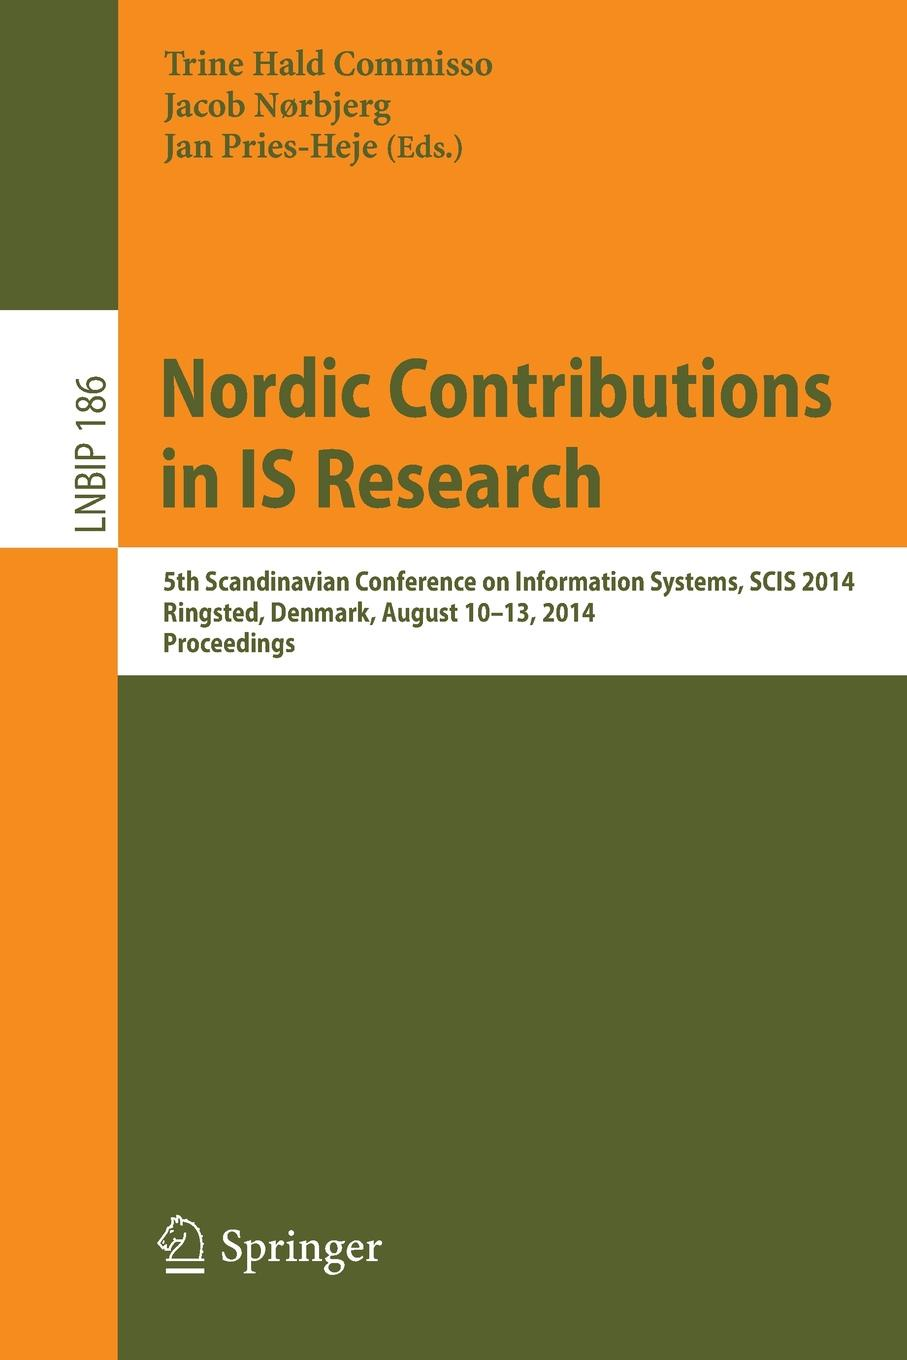 Nordic Contributions in IS Research. 5th Scandinavian Conference on Information Systems, SCIS 2014, Ringsted, Denmark, August 10-13, 2014, Proceedings modern scandinavian design